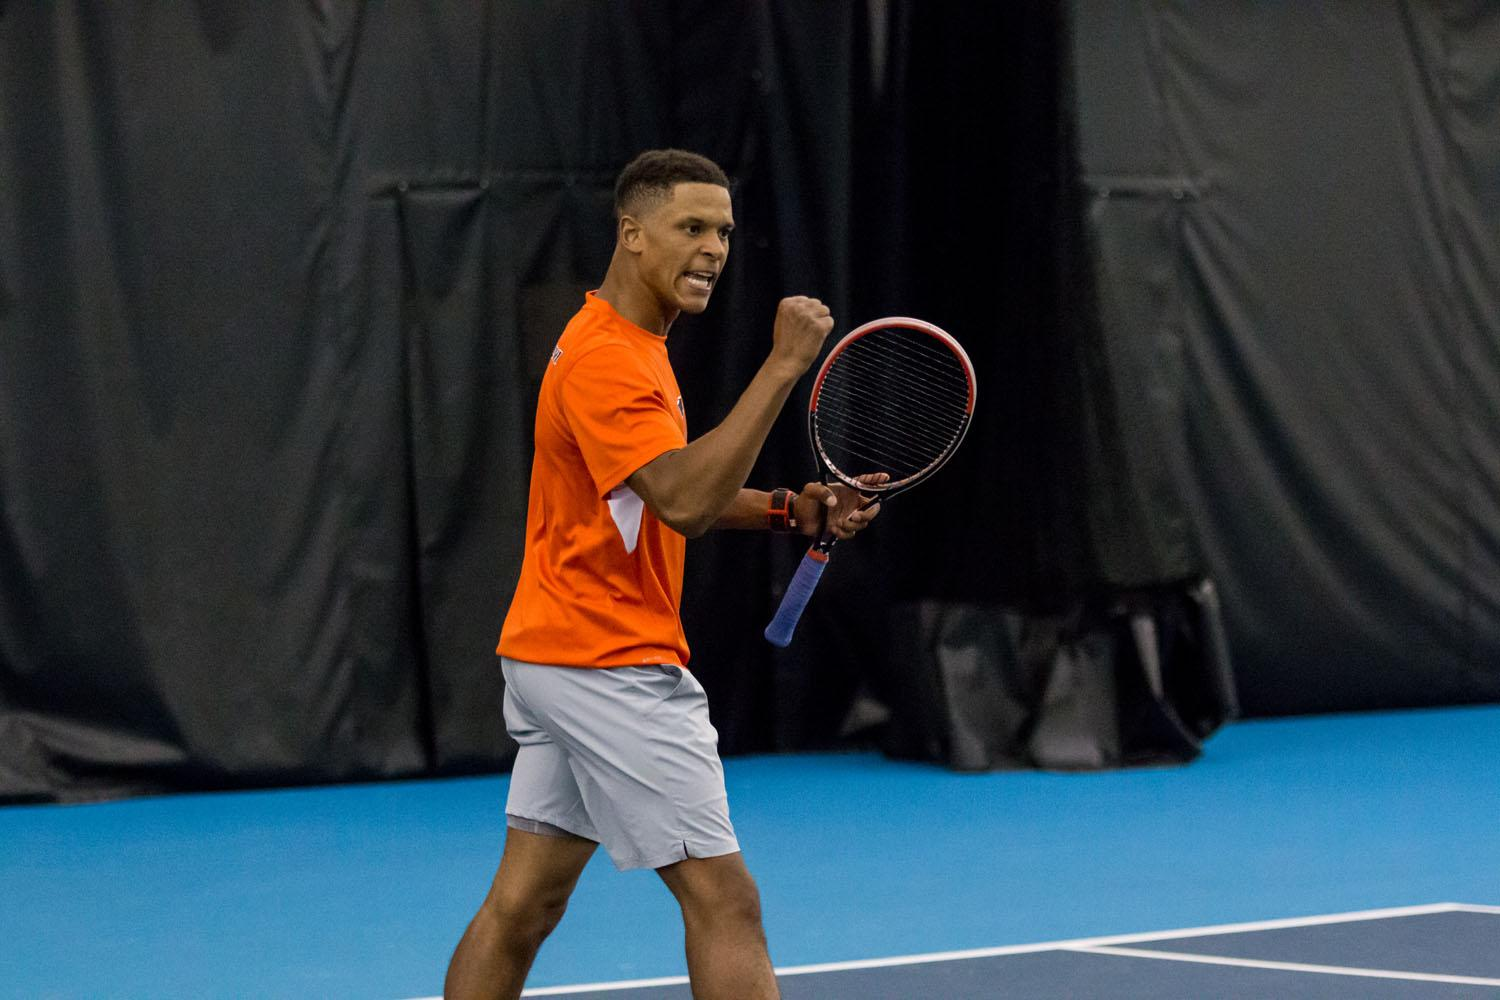 Illinois' Julian Childers celebrates after scoring a point in his doubles match against Notre Dame at the Atkins Tennis Center on Friday, January 22, 2016. Illinois won 4-0.